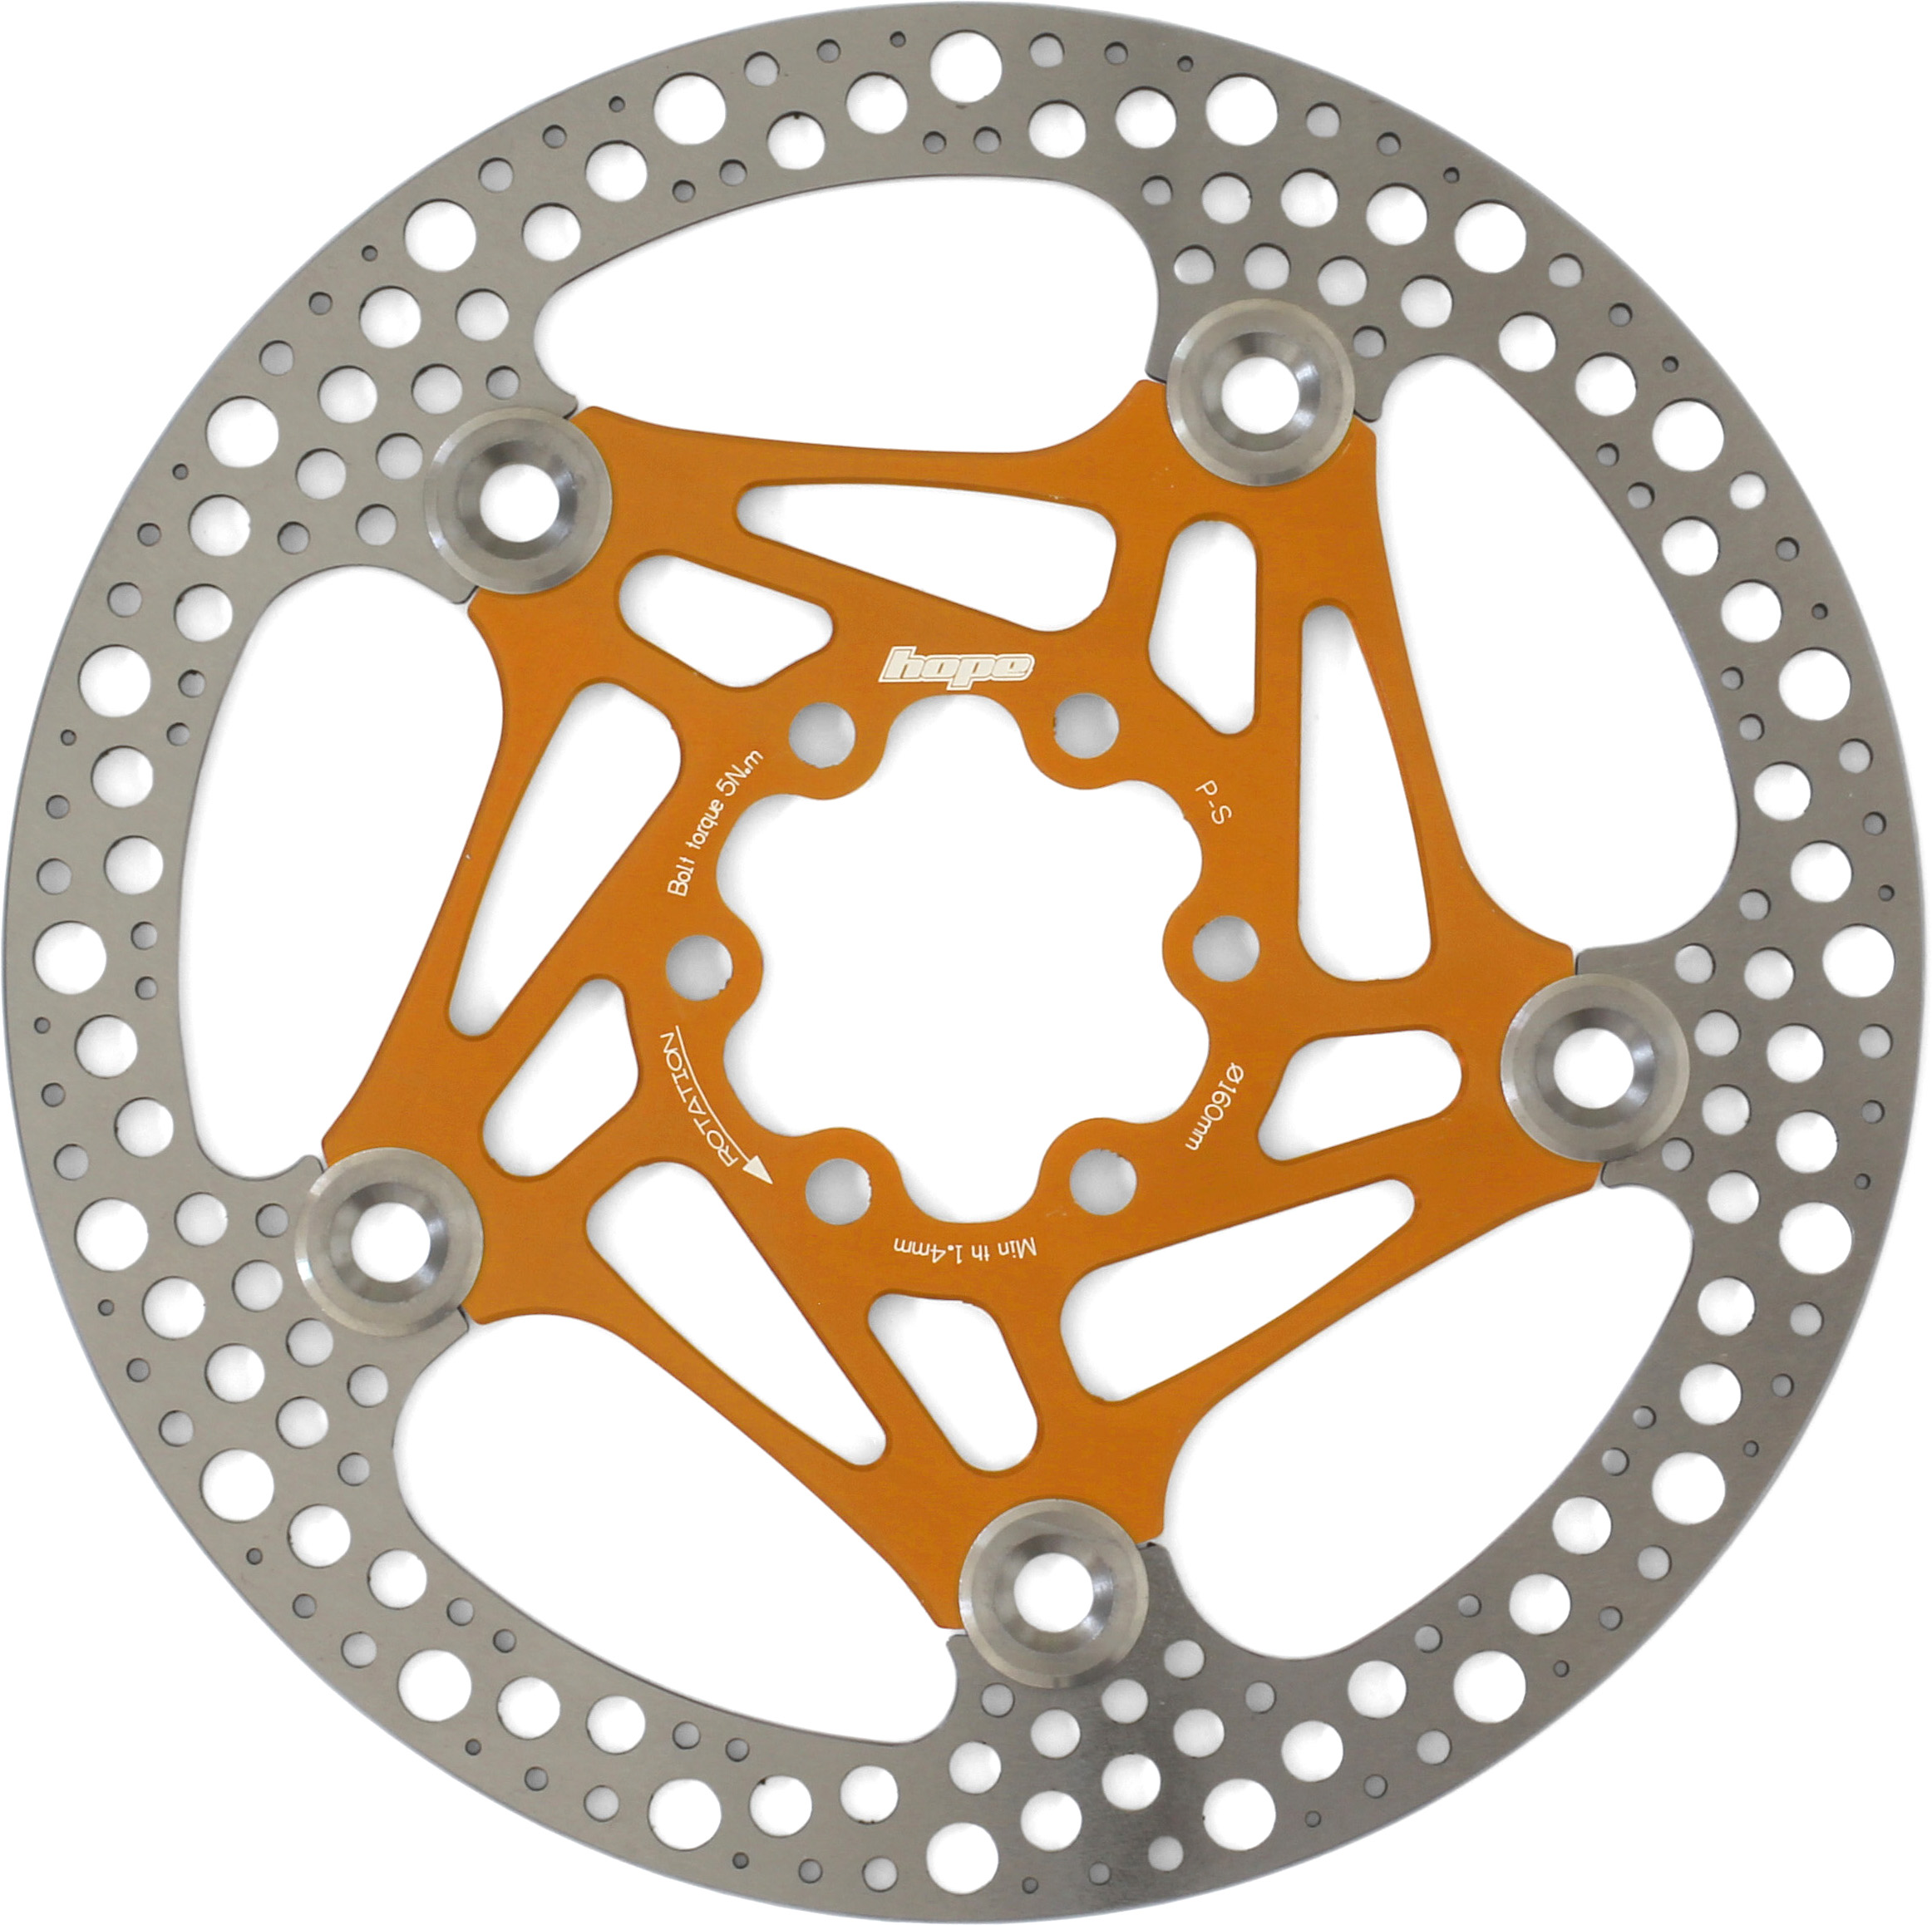 All Colors Brand New Hope 6 Bolt 160mm Road Floating Disc Rotor